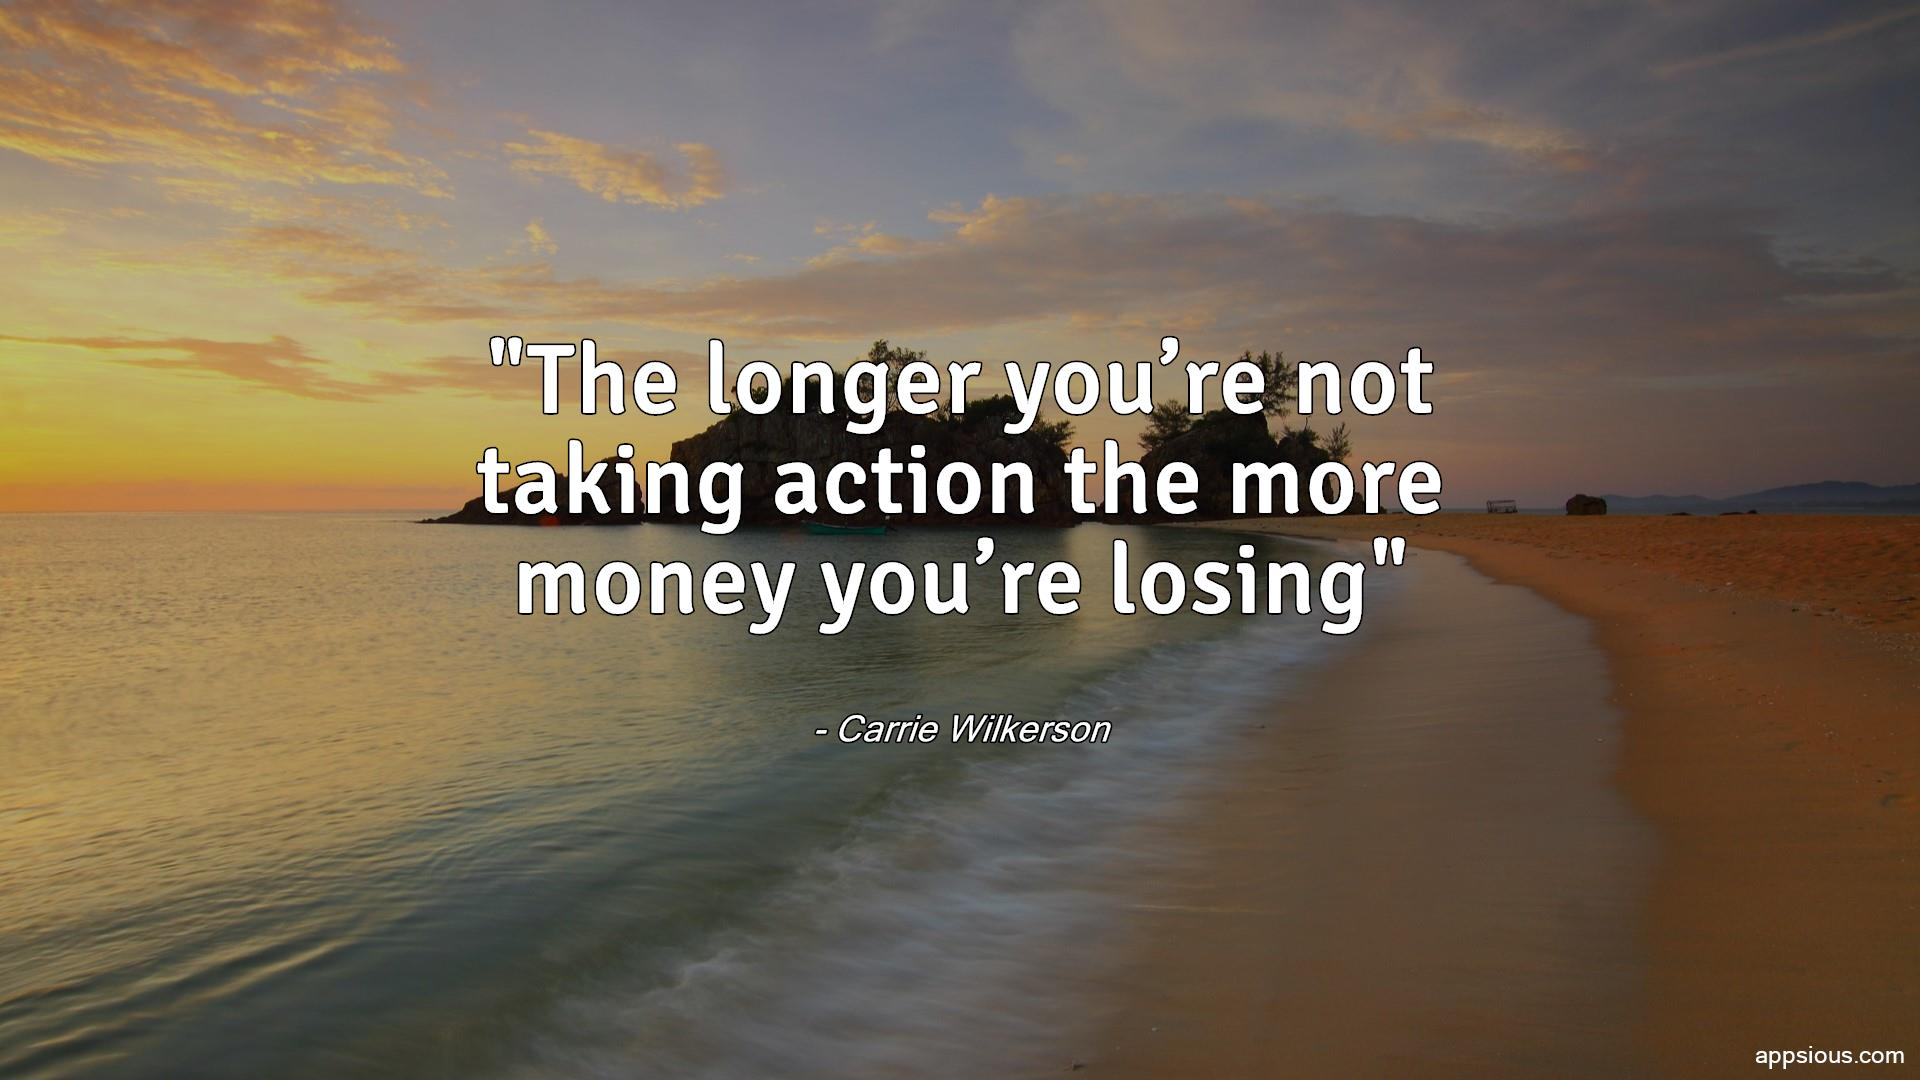 The longer you're not taking action the more money you're losing